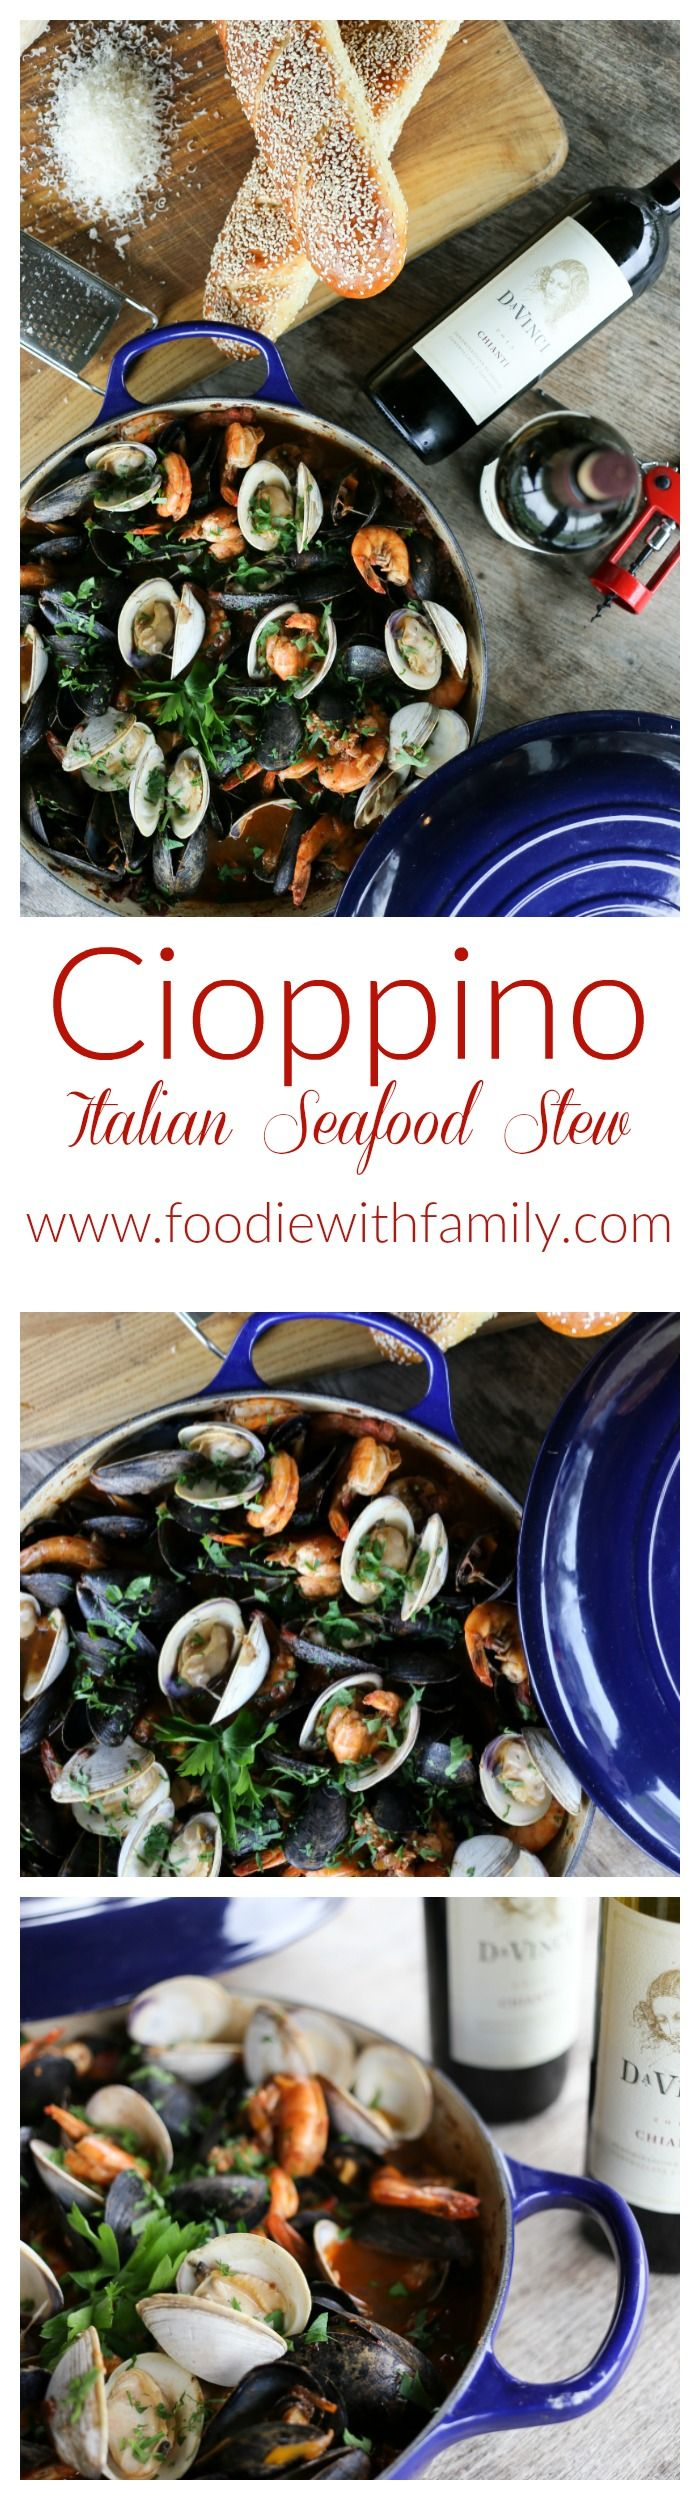 It had humble beginnings as a fisherman's stew, but this gorgeous Cioppino or Italian Seafood Stew is now a showstopper of a main dish. Serve on its own or as part of your Feast of the Seven Fishes. #sponsored